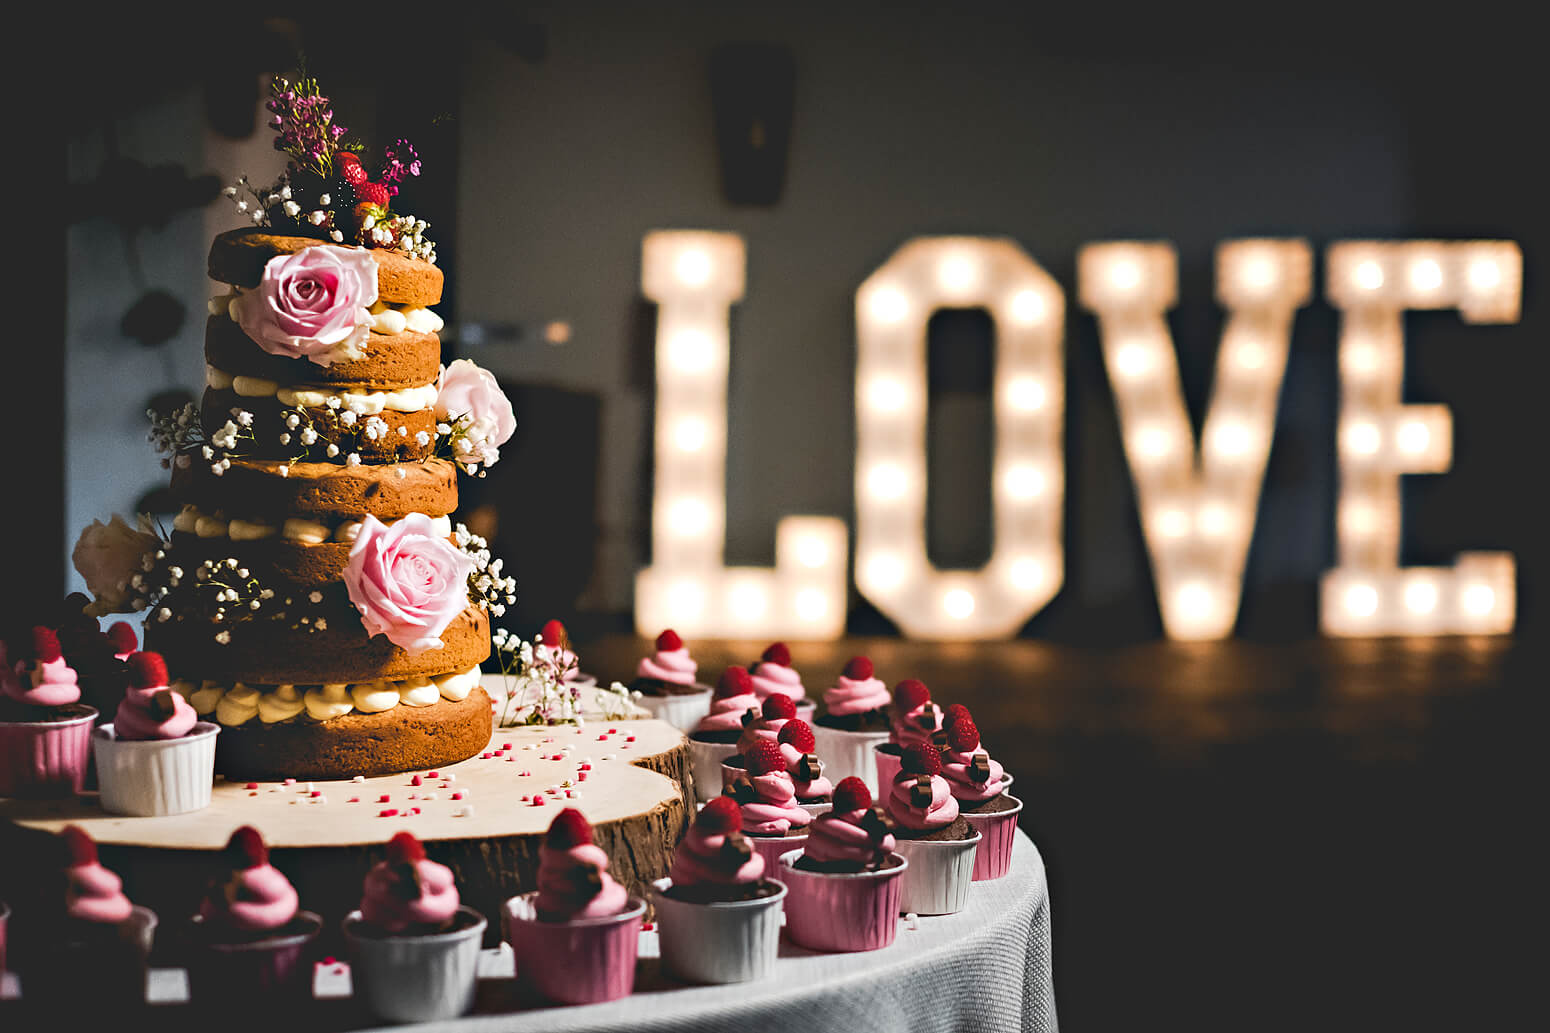 LOVE sign and wedding cake